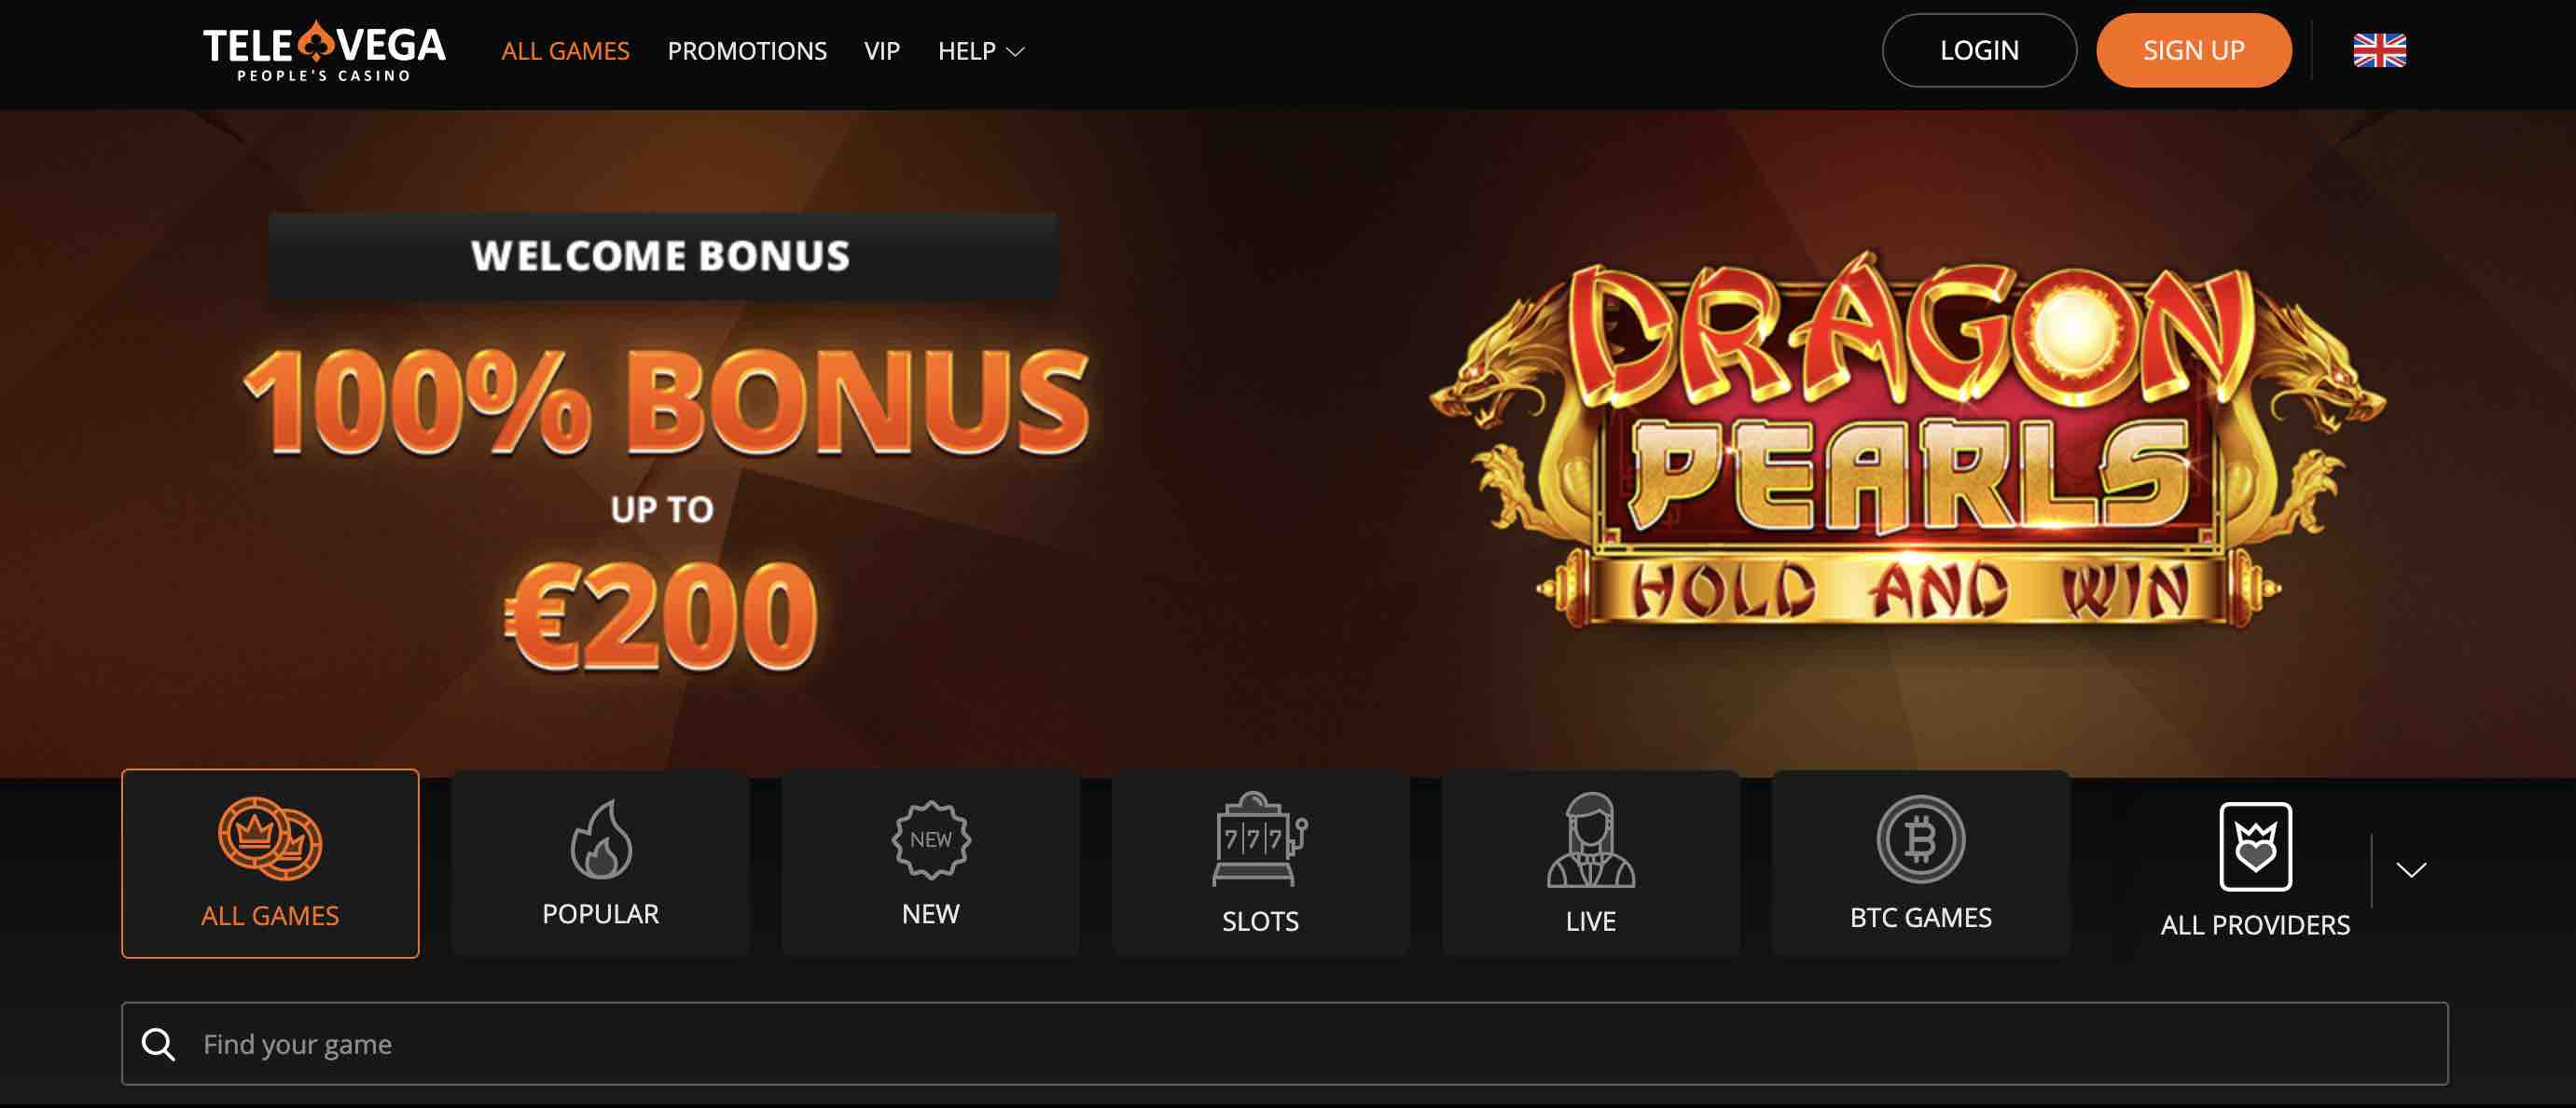 TeleVega Casino Review Join Now